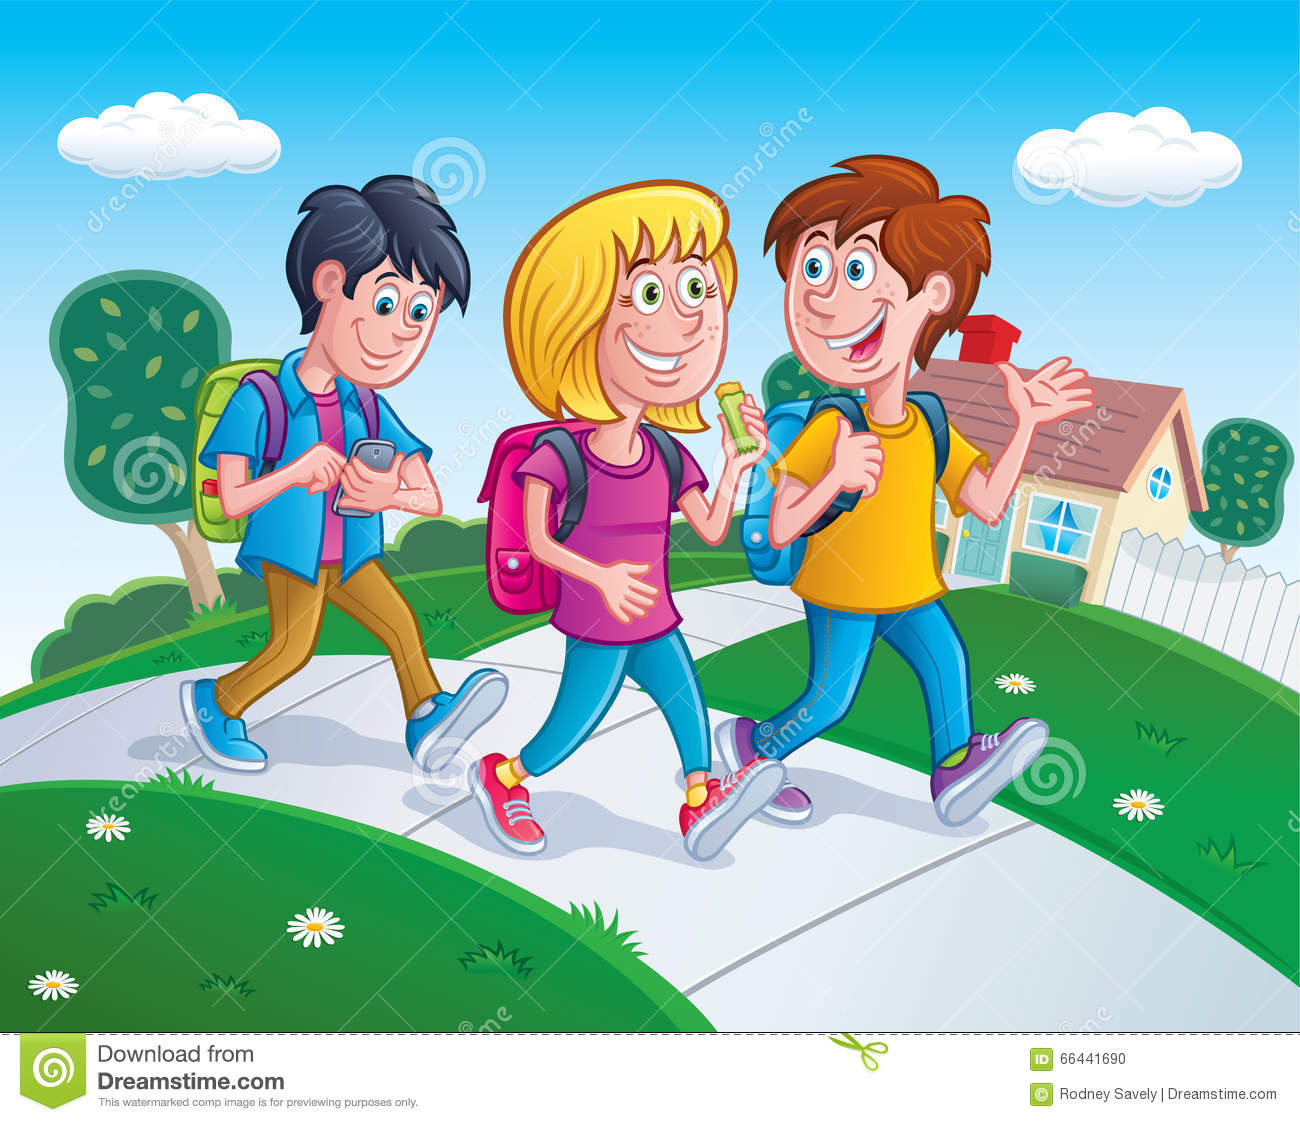 Kids walking to a us map clipart clipart transparent library Kids Walking Home From School Stock Photo - Image: 66441690 clipart transparent library